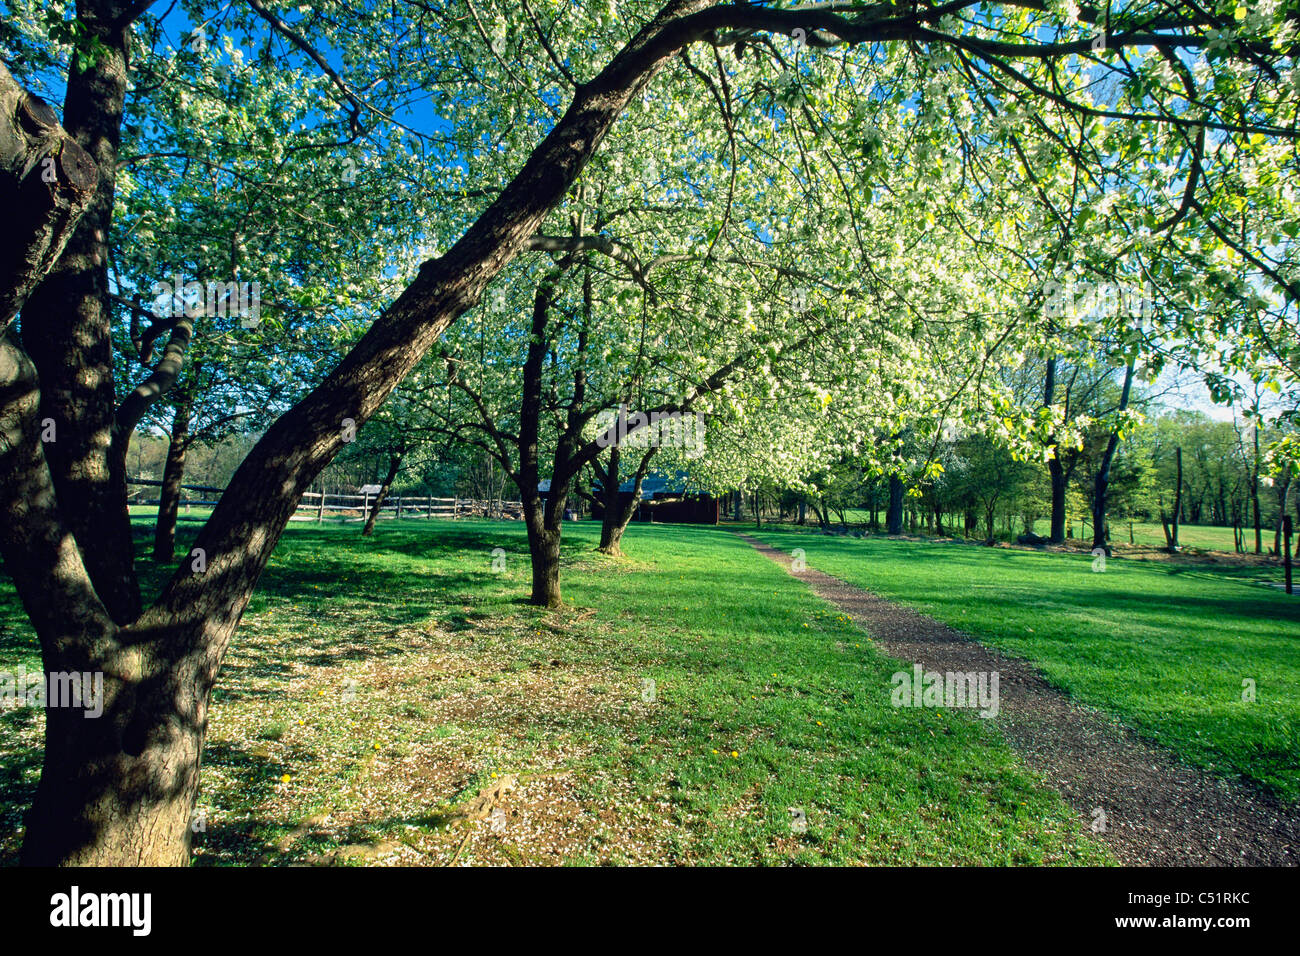 Spring Bloom in an Orchard, Historic Wicks Farm, Jockey Hollow State Park, New Jersey - Stock Image